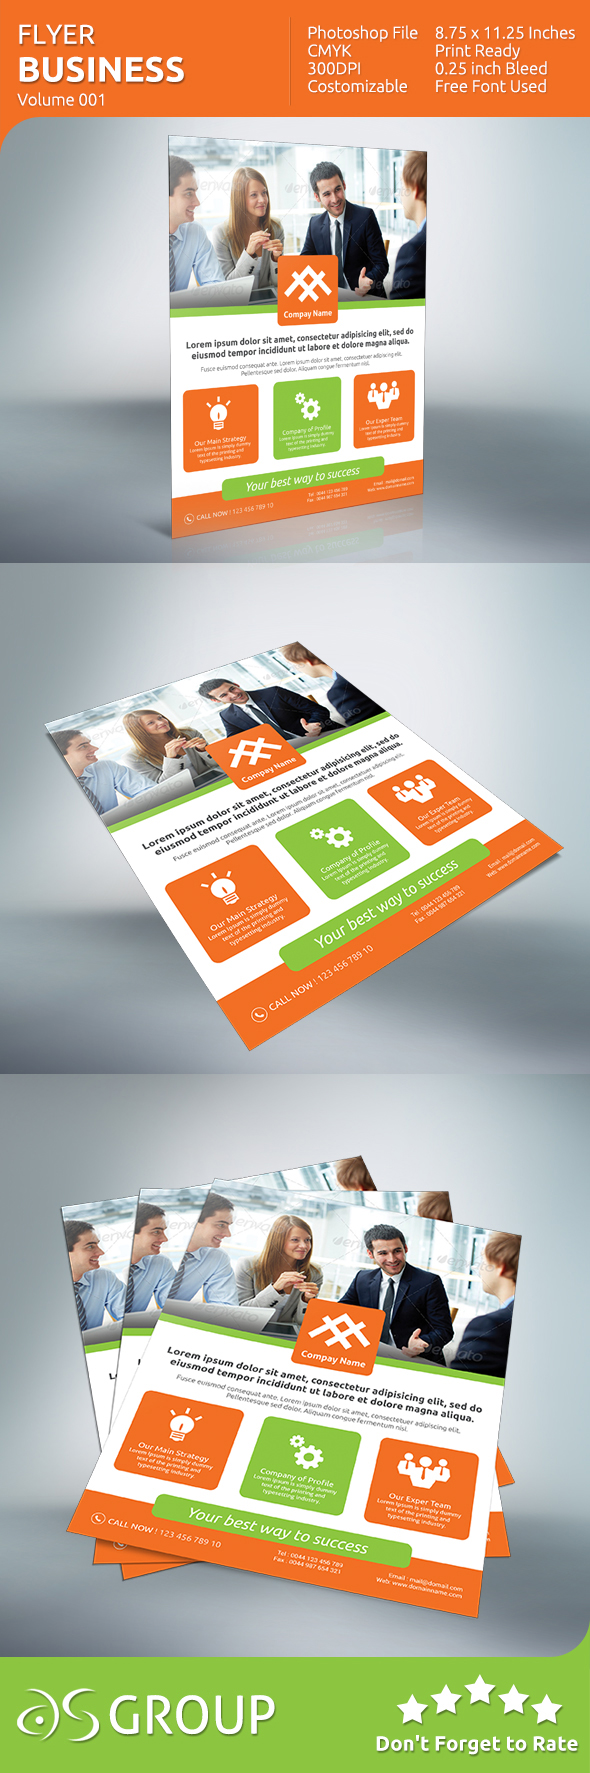 business_flyer-v001-preview